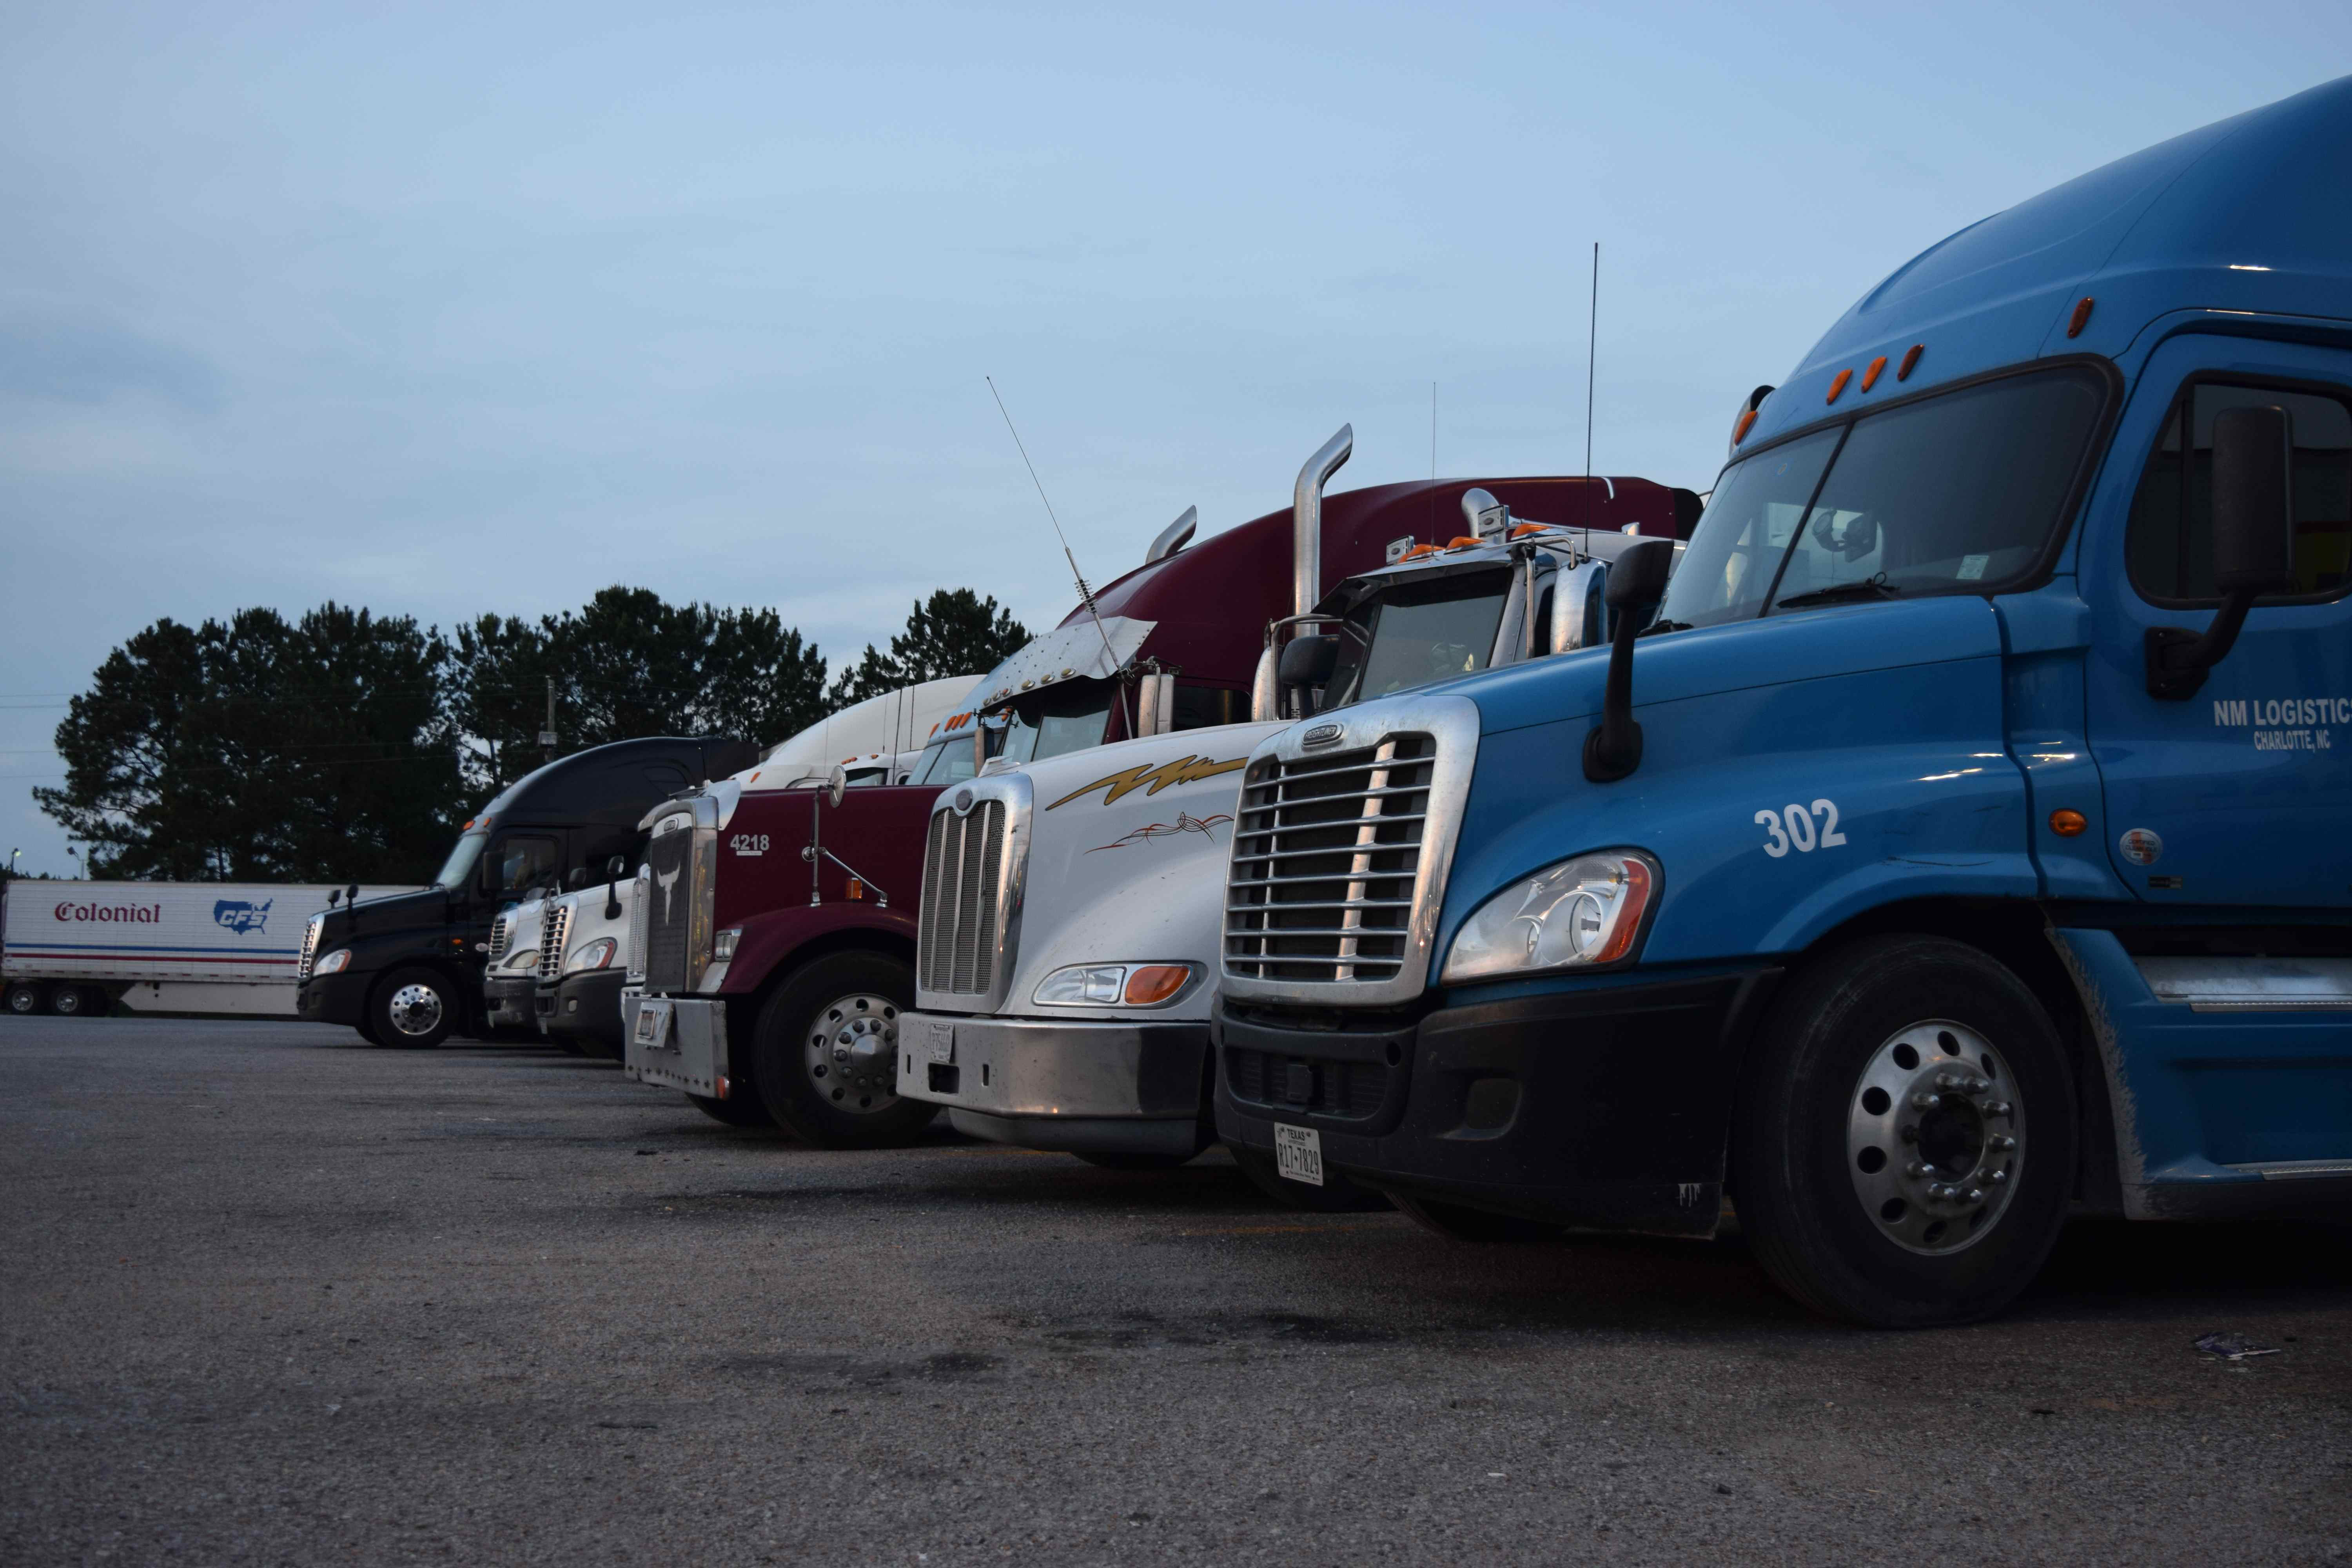 Truck parking coalition talks converting existing facilities to truck parking, other fixes at second meeting